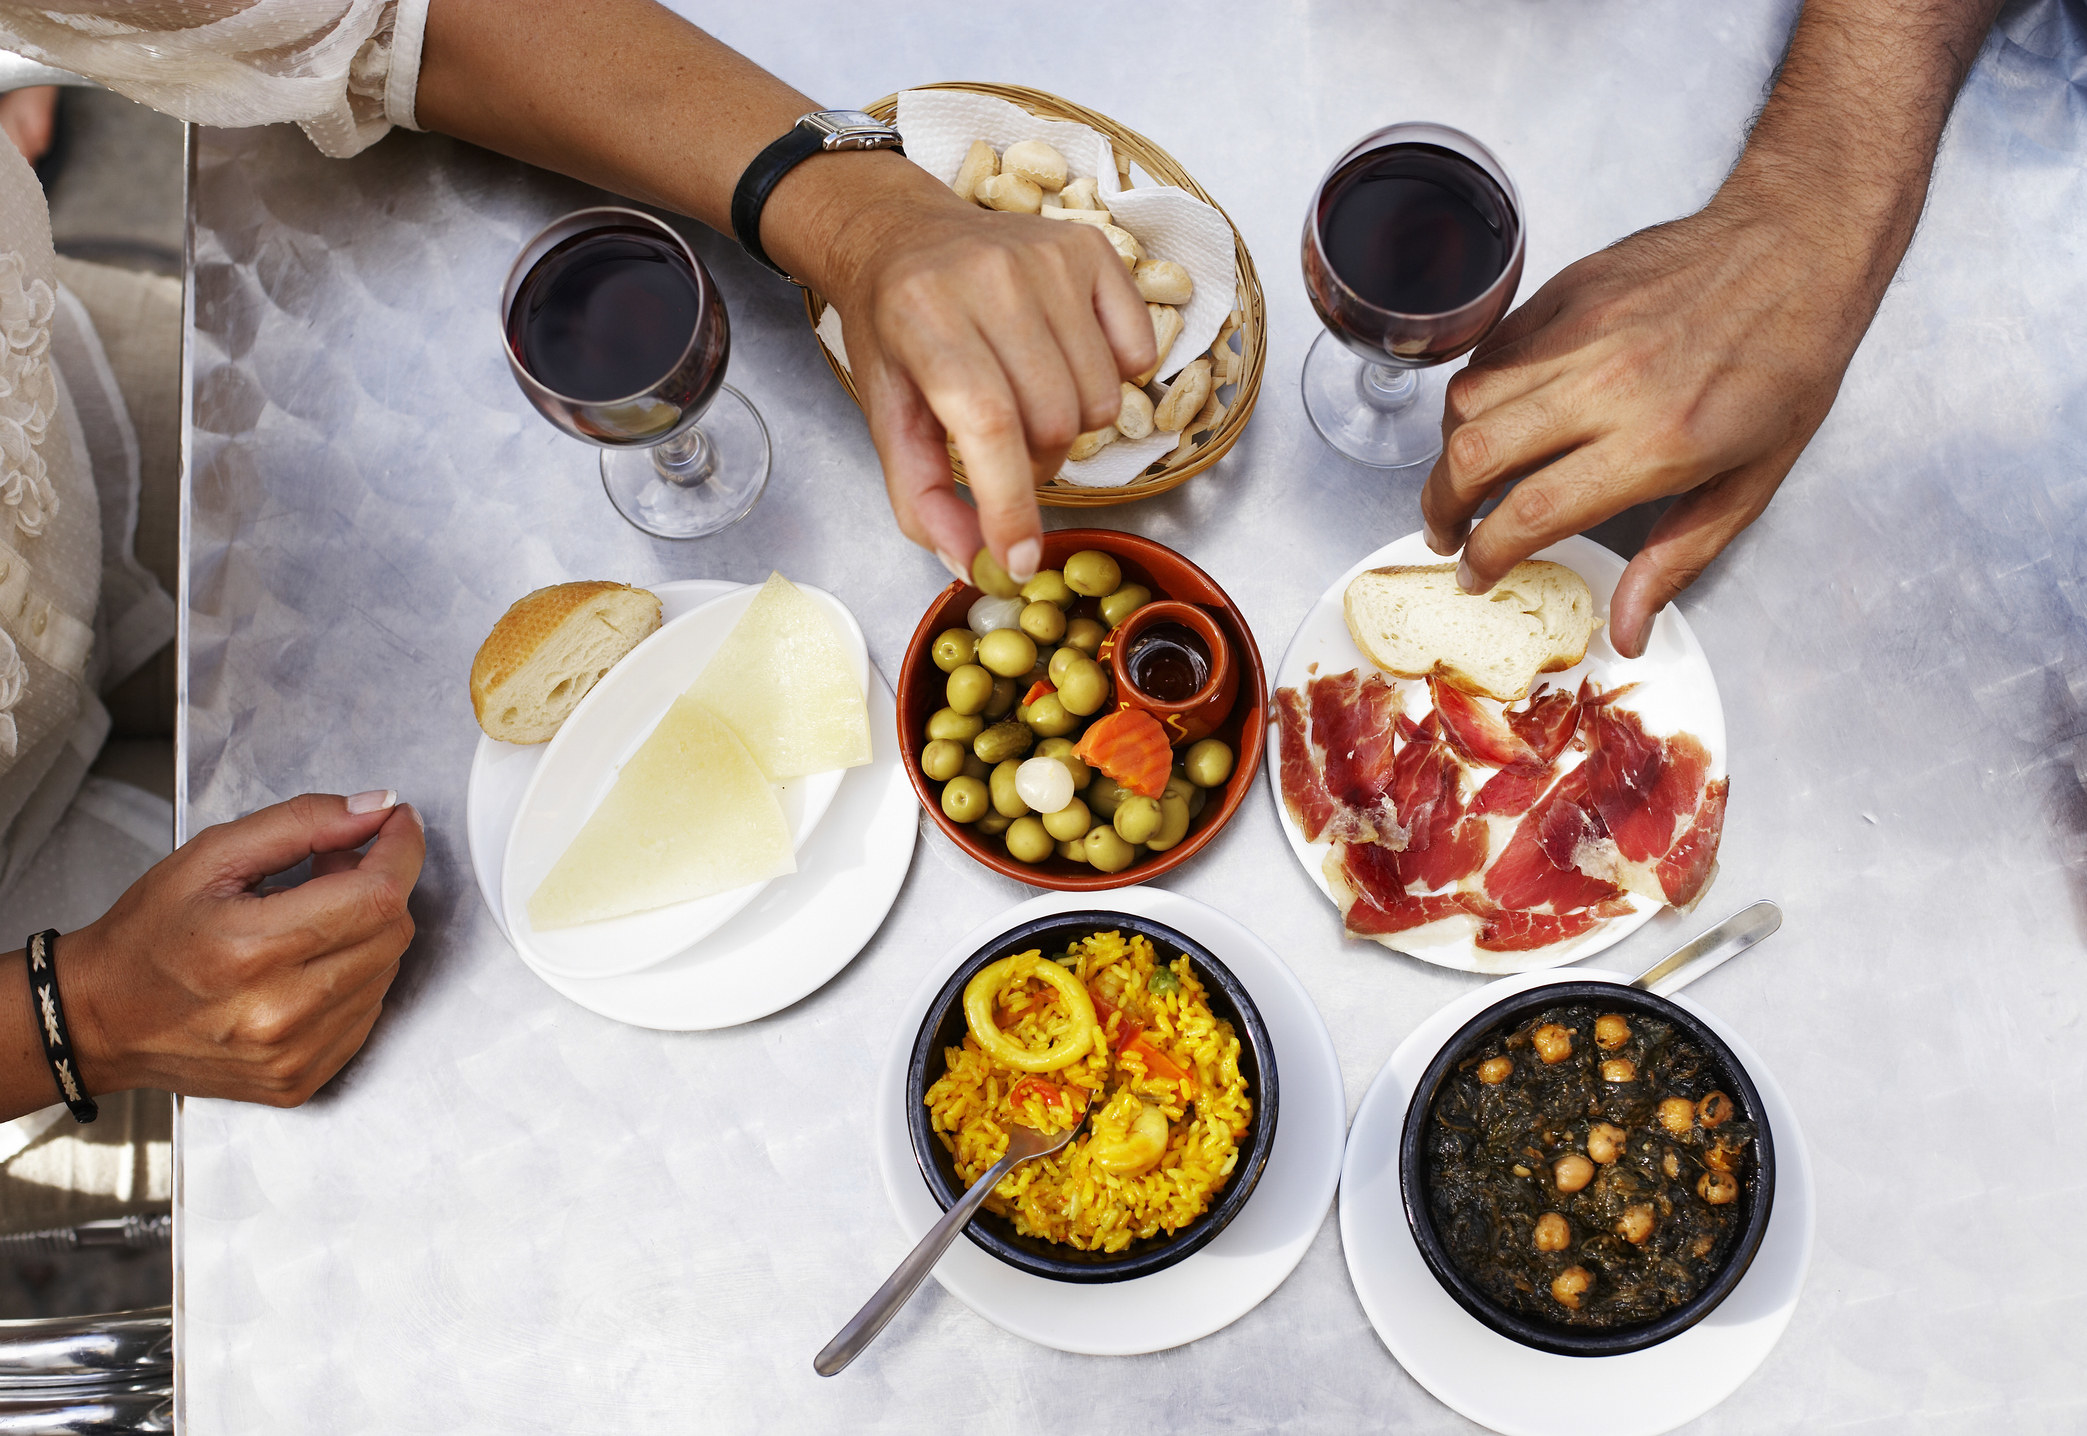 A tapas meal with two glasses of wine.